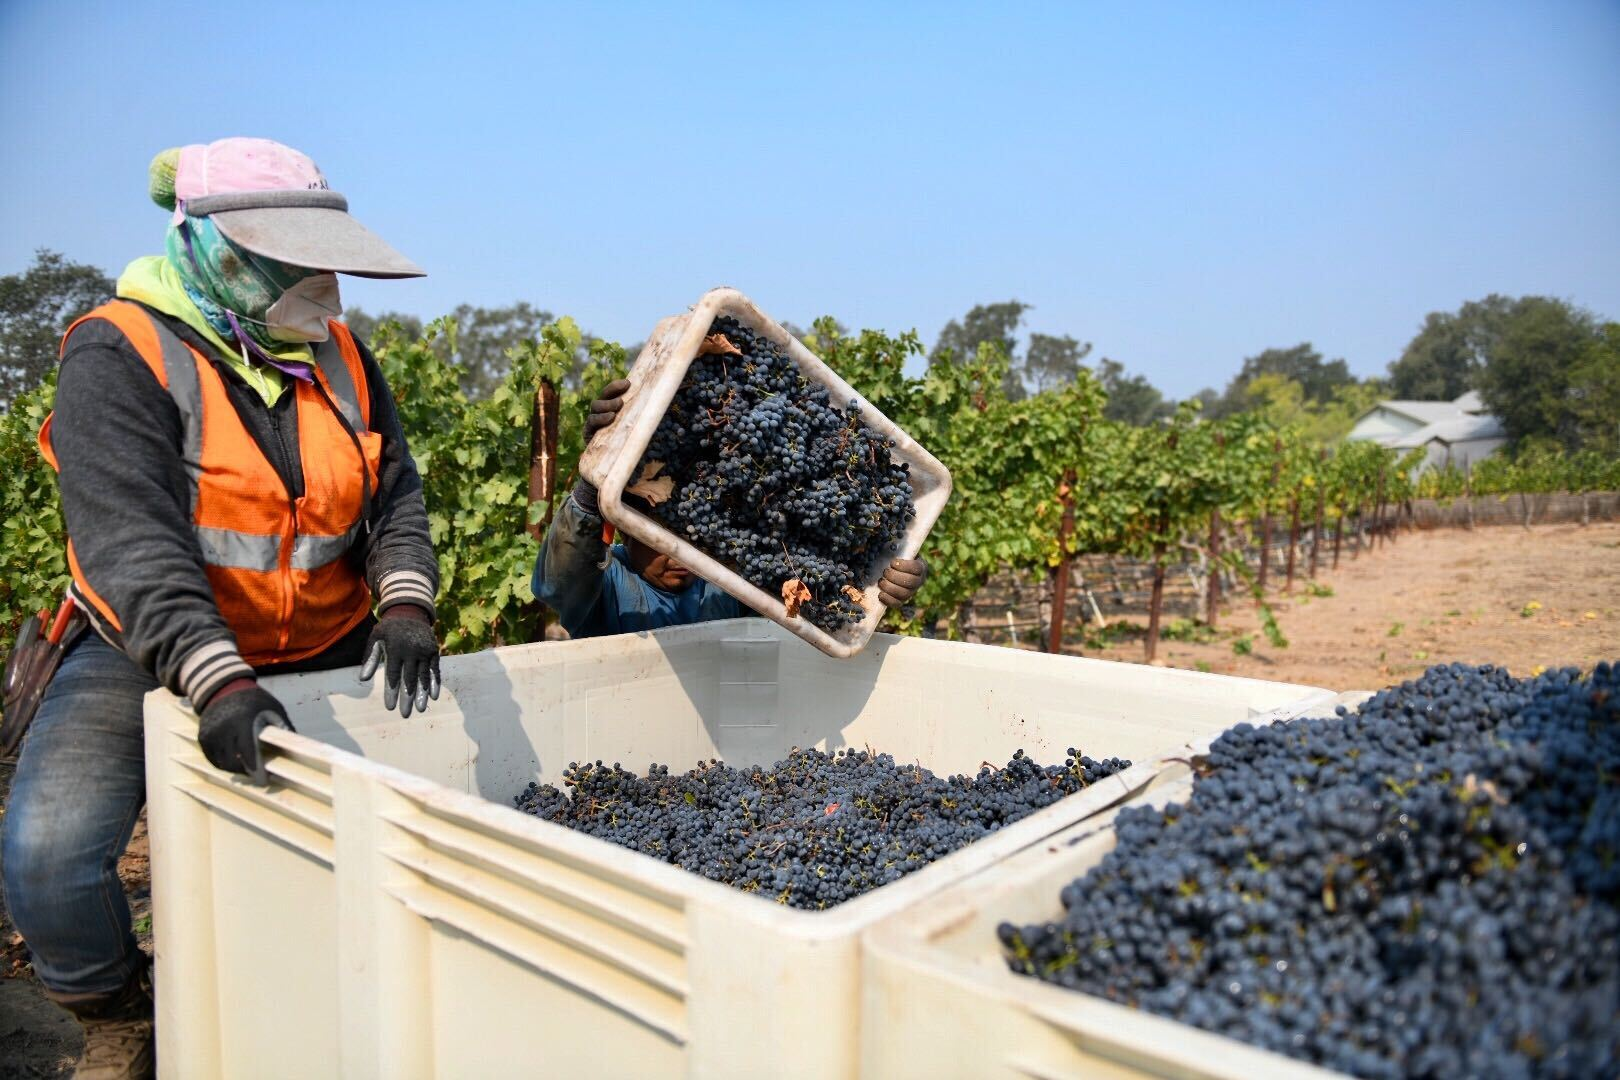 Workers harvest grapes at Garton Vineyards in Napa on Sept. 30, 2020.